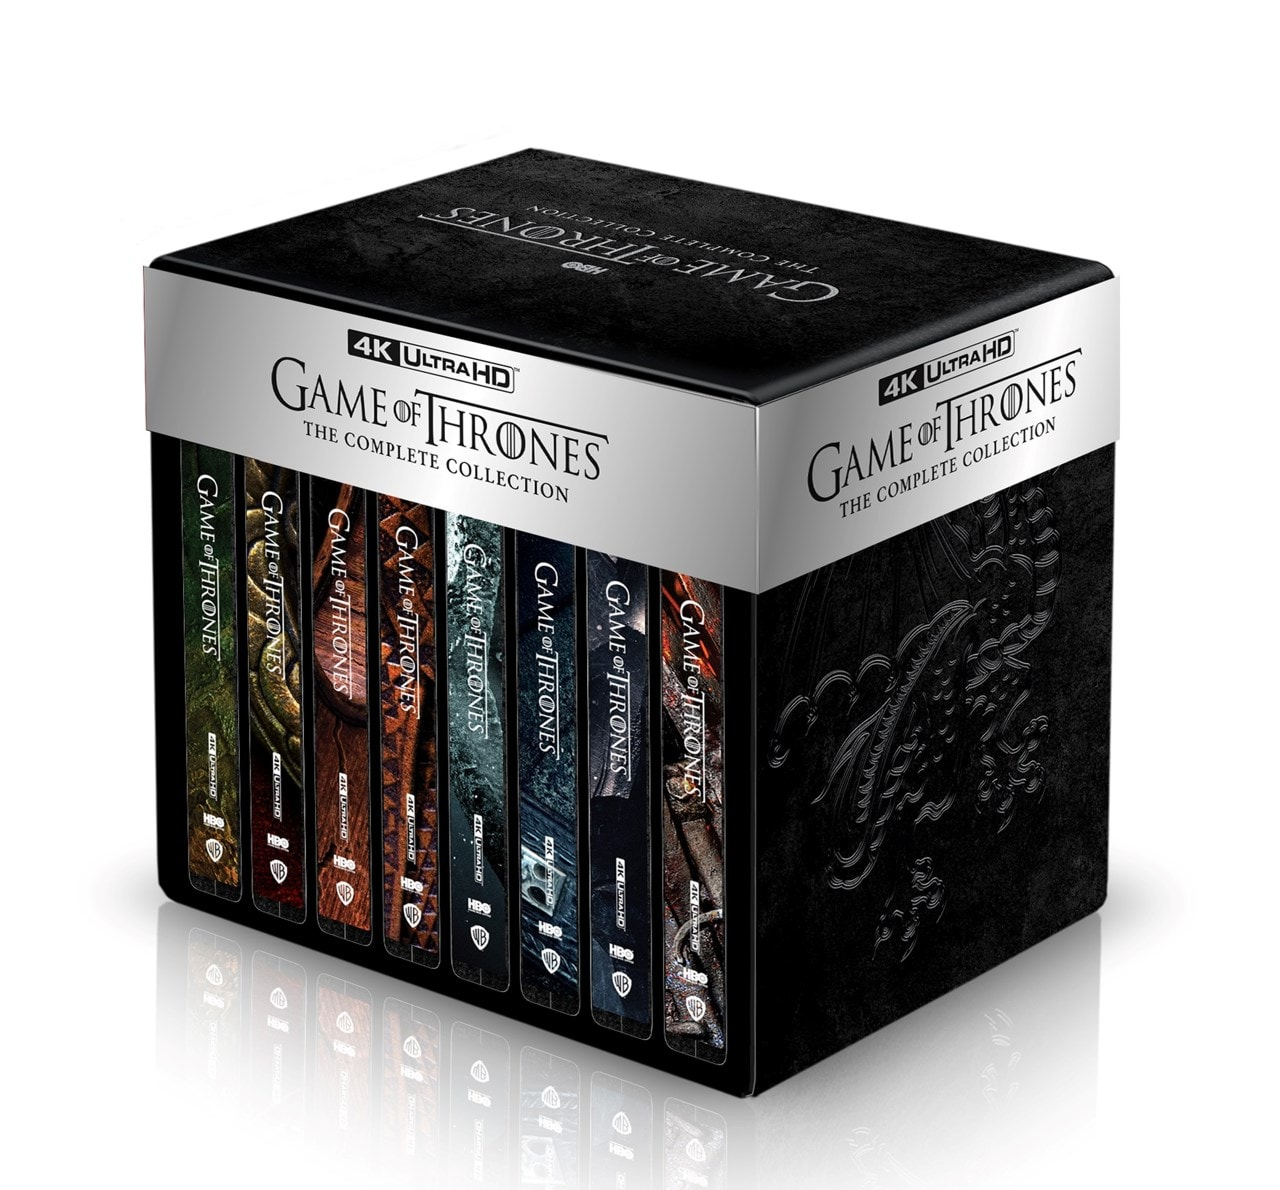 Game of Thrones: The Complete Seasons 1-8 Limited Edition 4K Ultra HD Steelbook Collection - 2